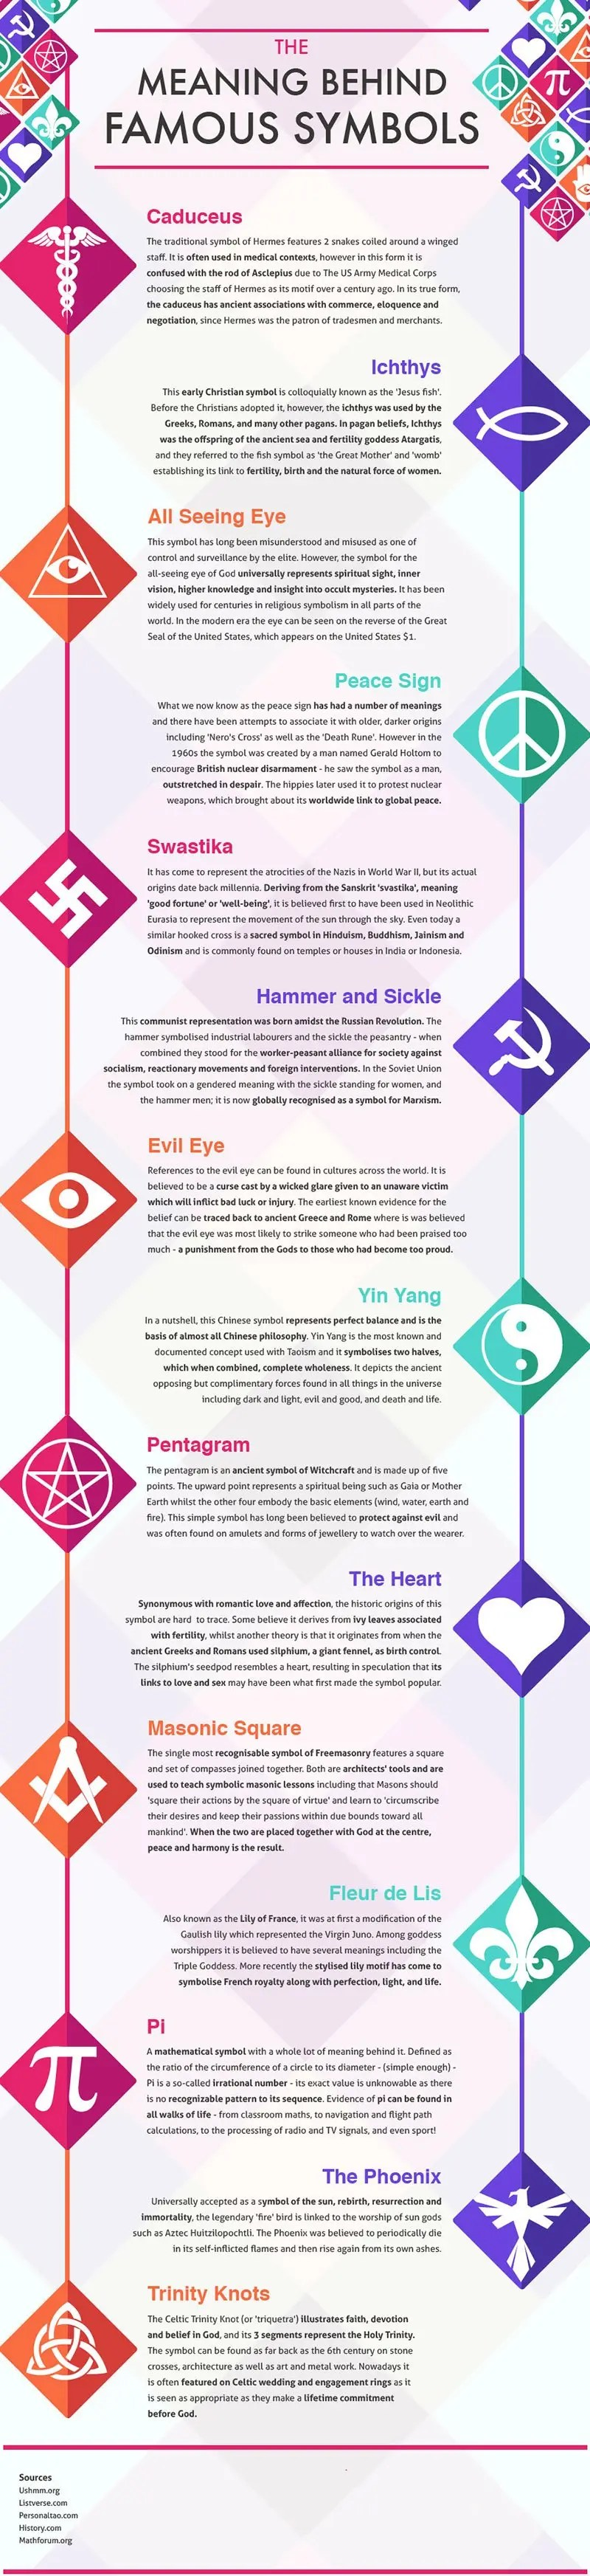 Meaning Behind Famous Symbols (Infographic) | KickassFacts.com